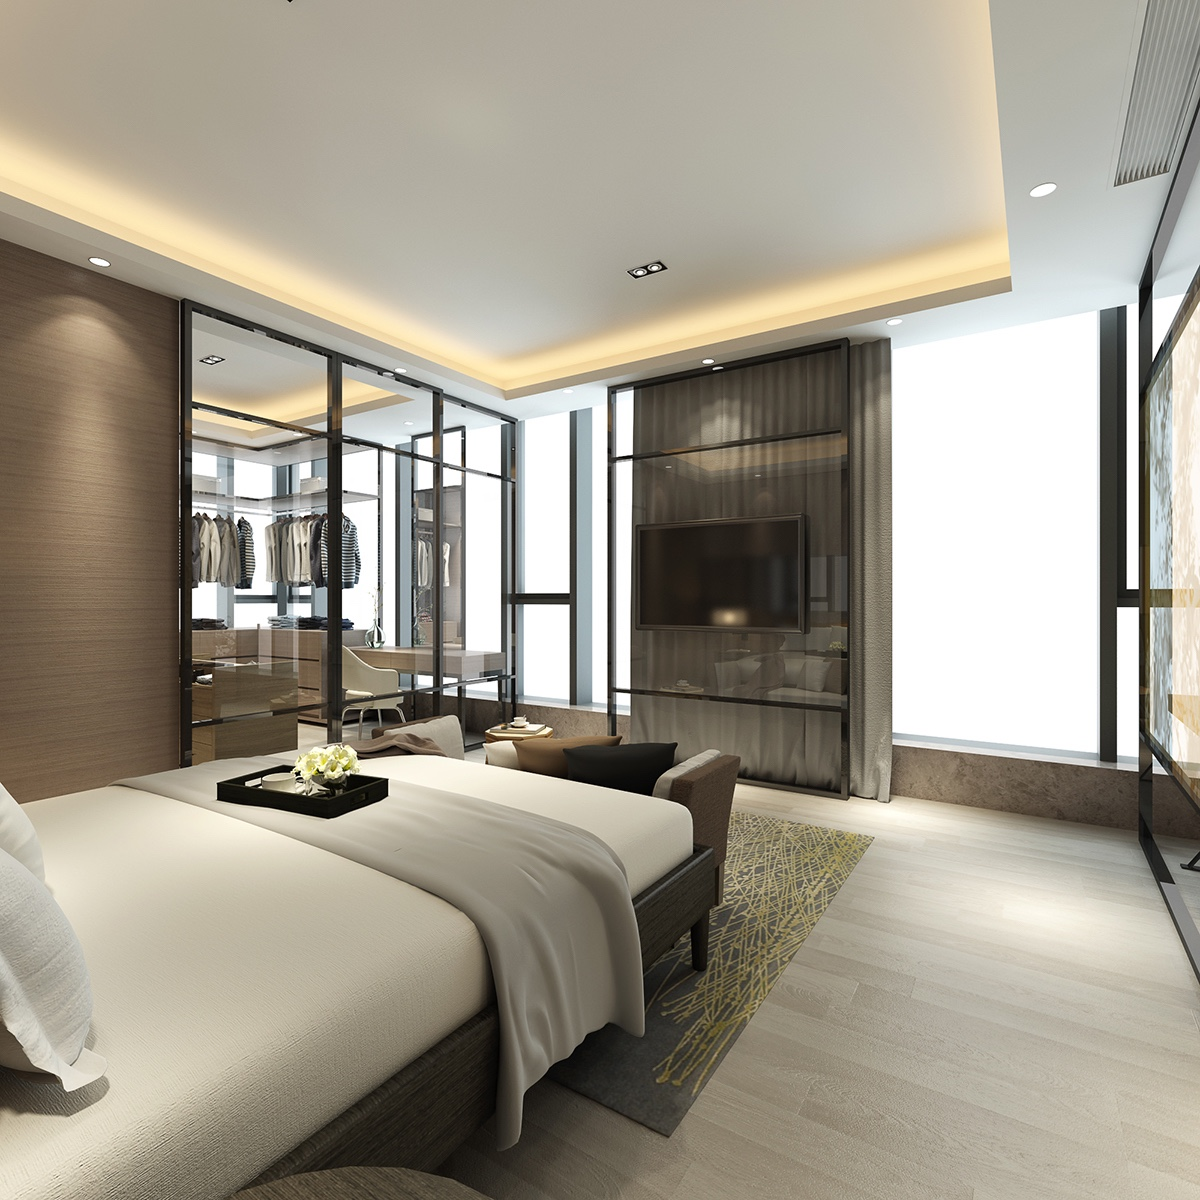 White And Wood Bedroom - 2 luxury homes with beige focused interior design